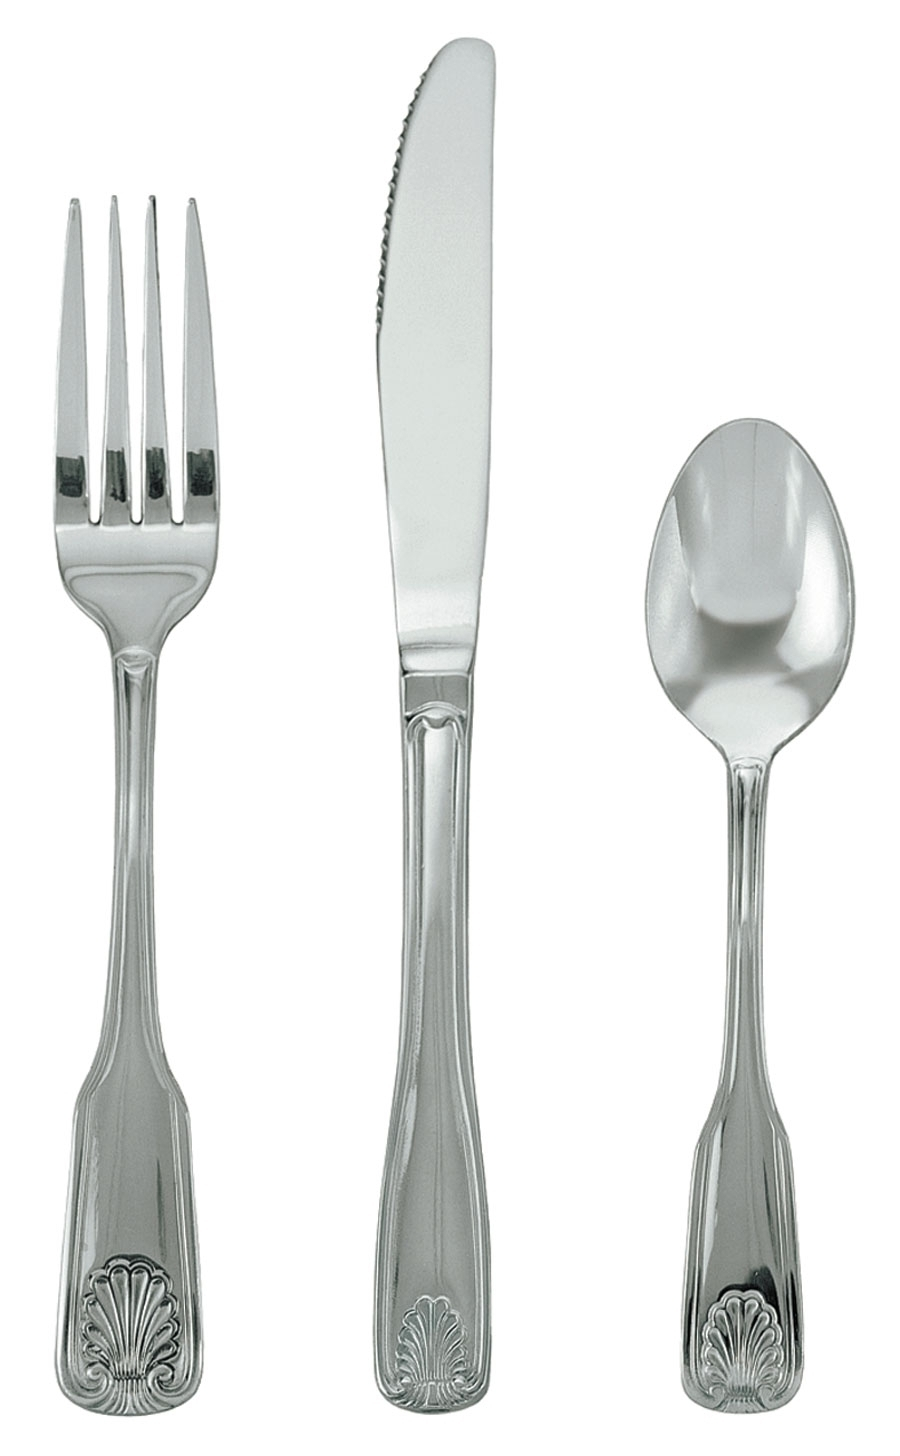 SH-506-N Update International - Salad Fork, 18/0 stainless steel, mirror polish, extra heavy weight